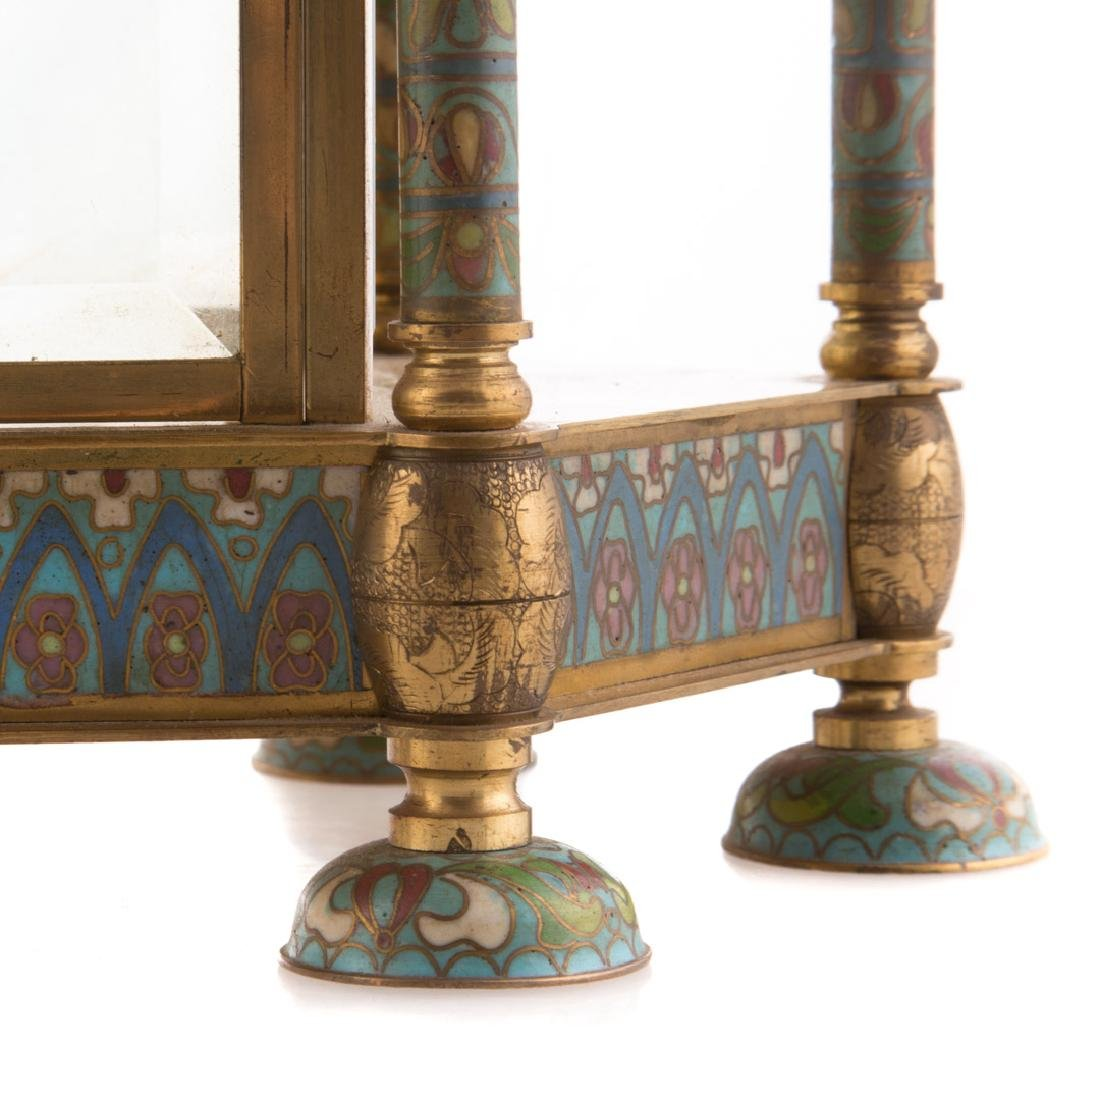 Chinese brass and cloisonne mantel clock - 4